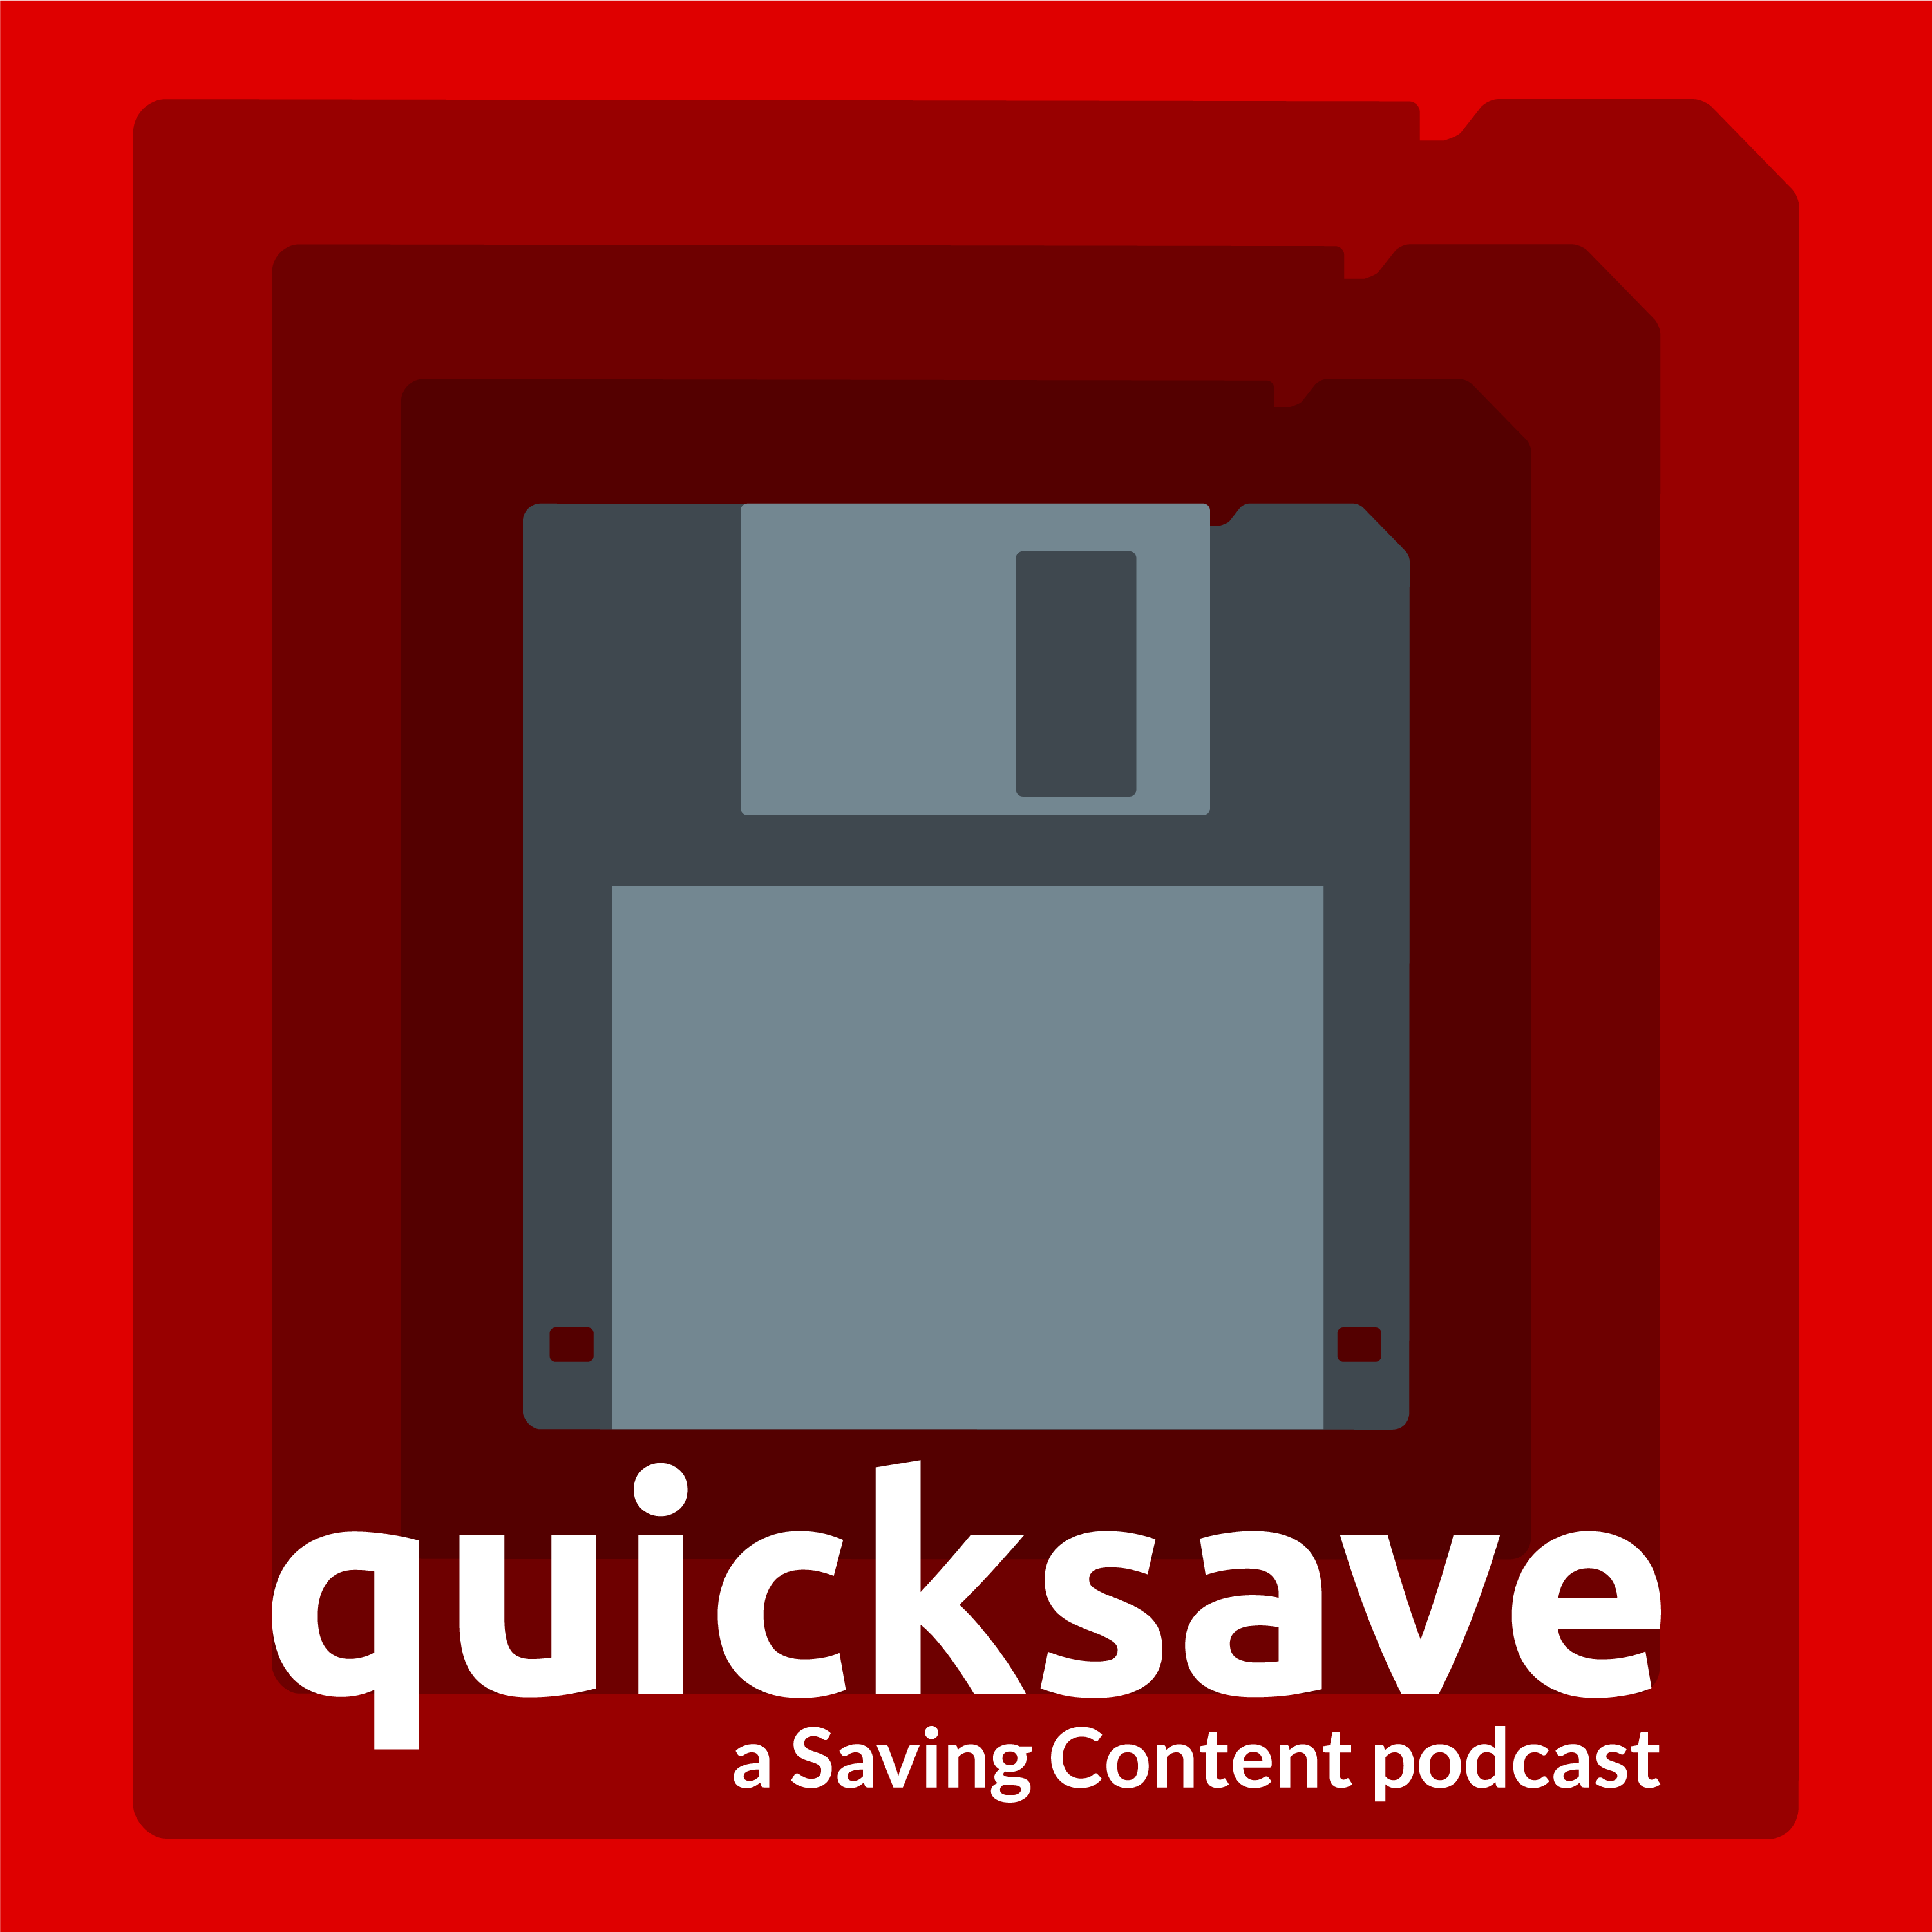 Quicksave 020: Let's Get Rid of Time